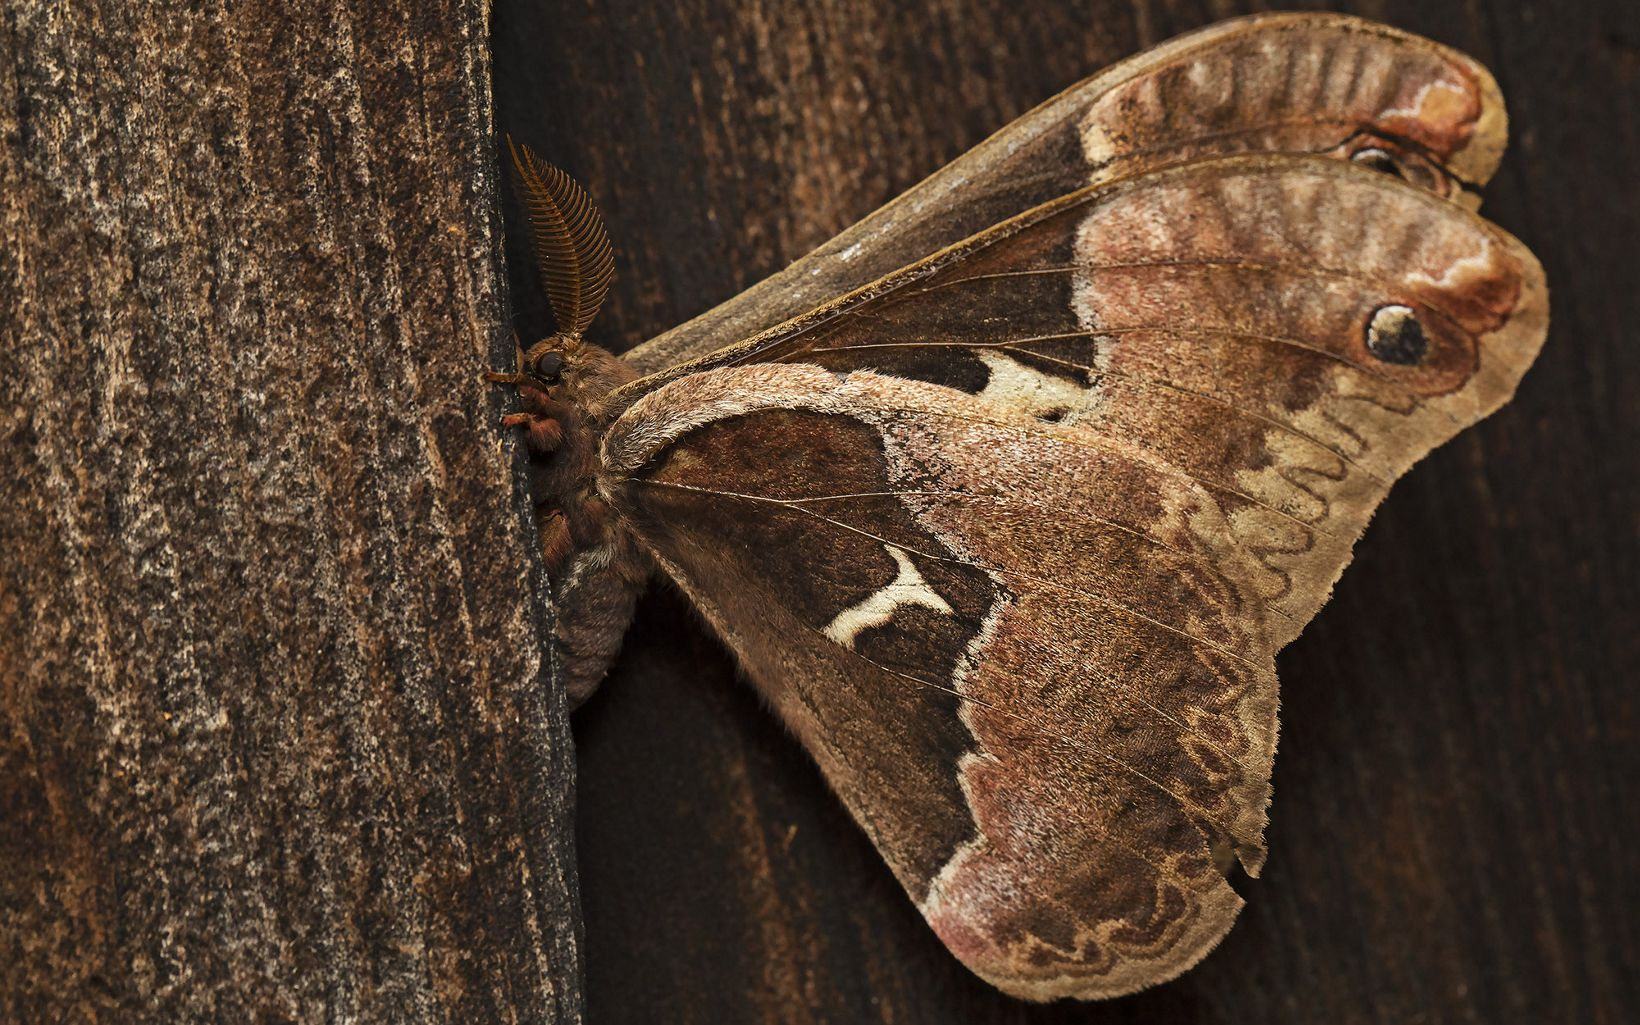 Profile view of tulip tree moth on wood structure